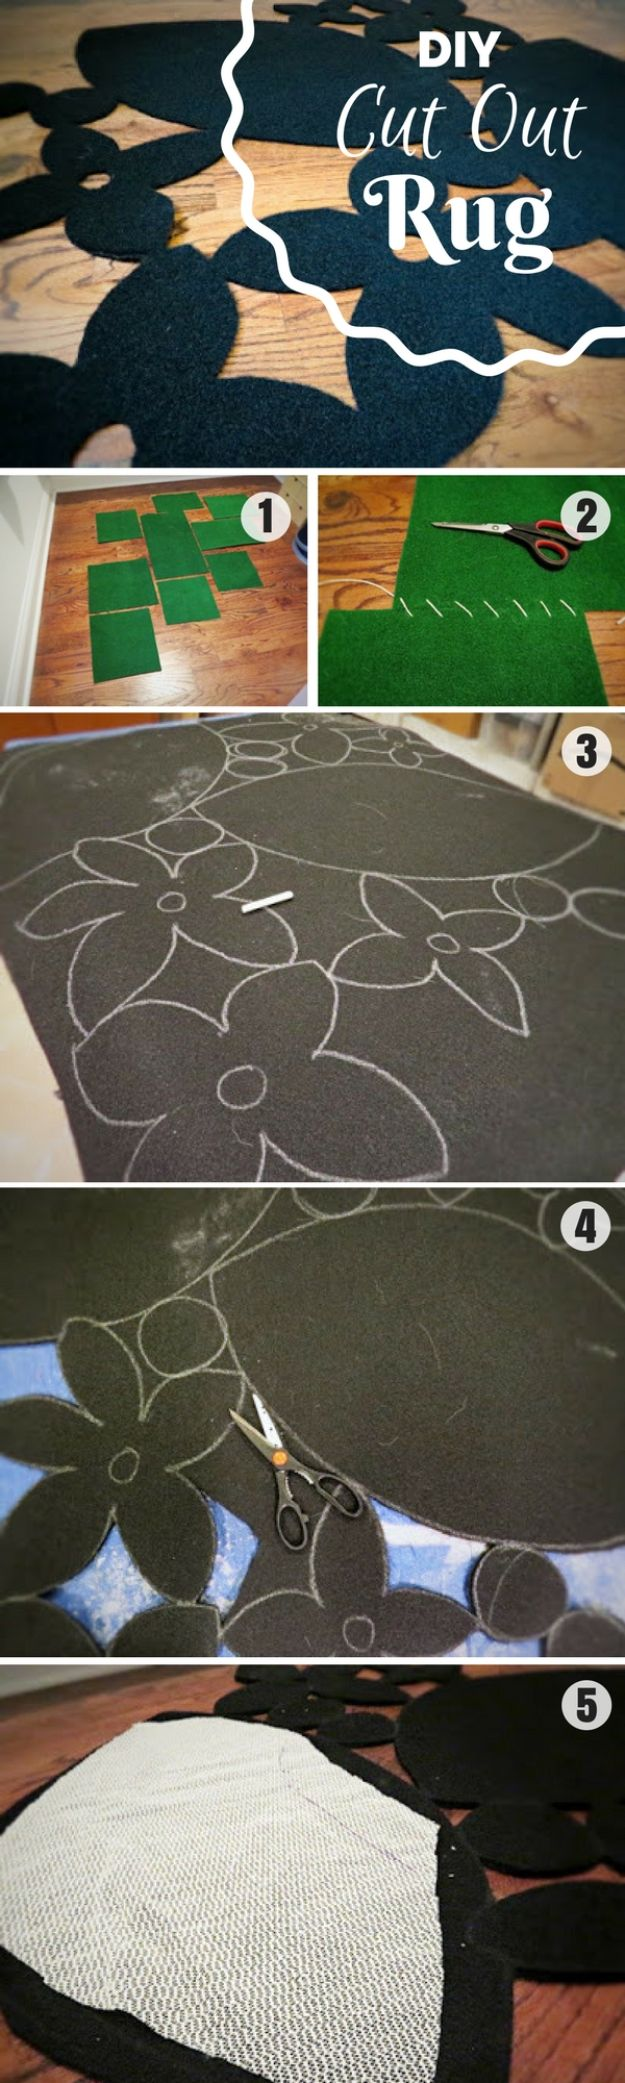 DIY Rugs - DIY Cut-Out Rug - Ideas for An Easy Handmade Rug for Living Room, Bedroom, Kitchen Mat and Cheap Area Rugs You Can Make - Stencil Art Tutorial, Painting Tips, Fabric, Yarn, Old Denim Jeans, Rope, Tshirt, Pom Pom, Fur, Crochet, Woven and Outdoor Projects - Large and Small Carpet http://diyjoy.com/diy-rug-tutorials